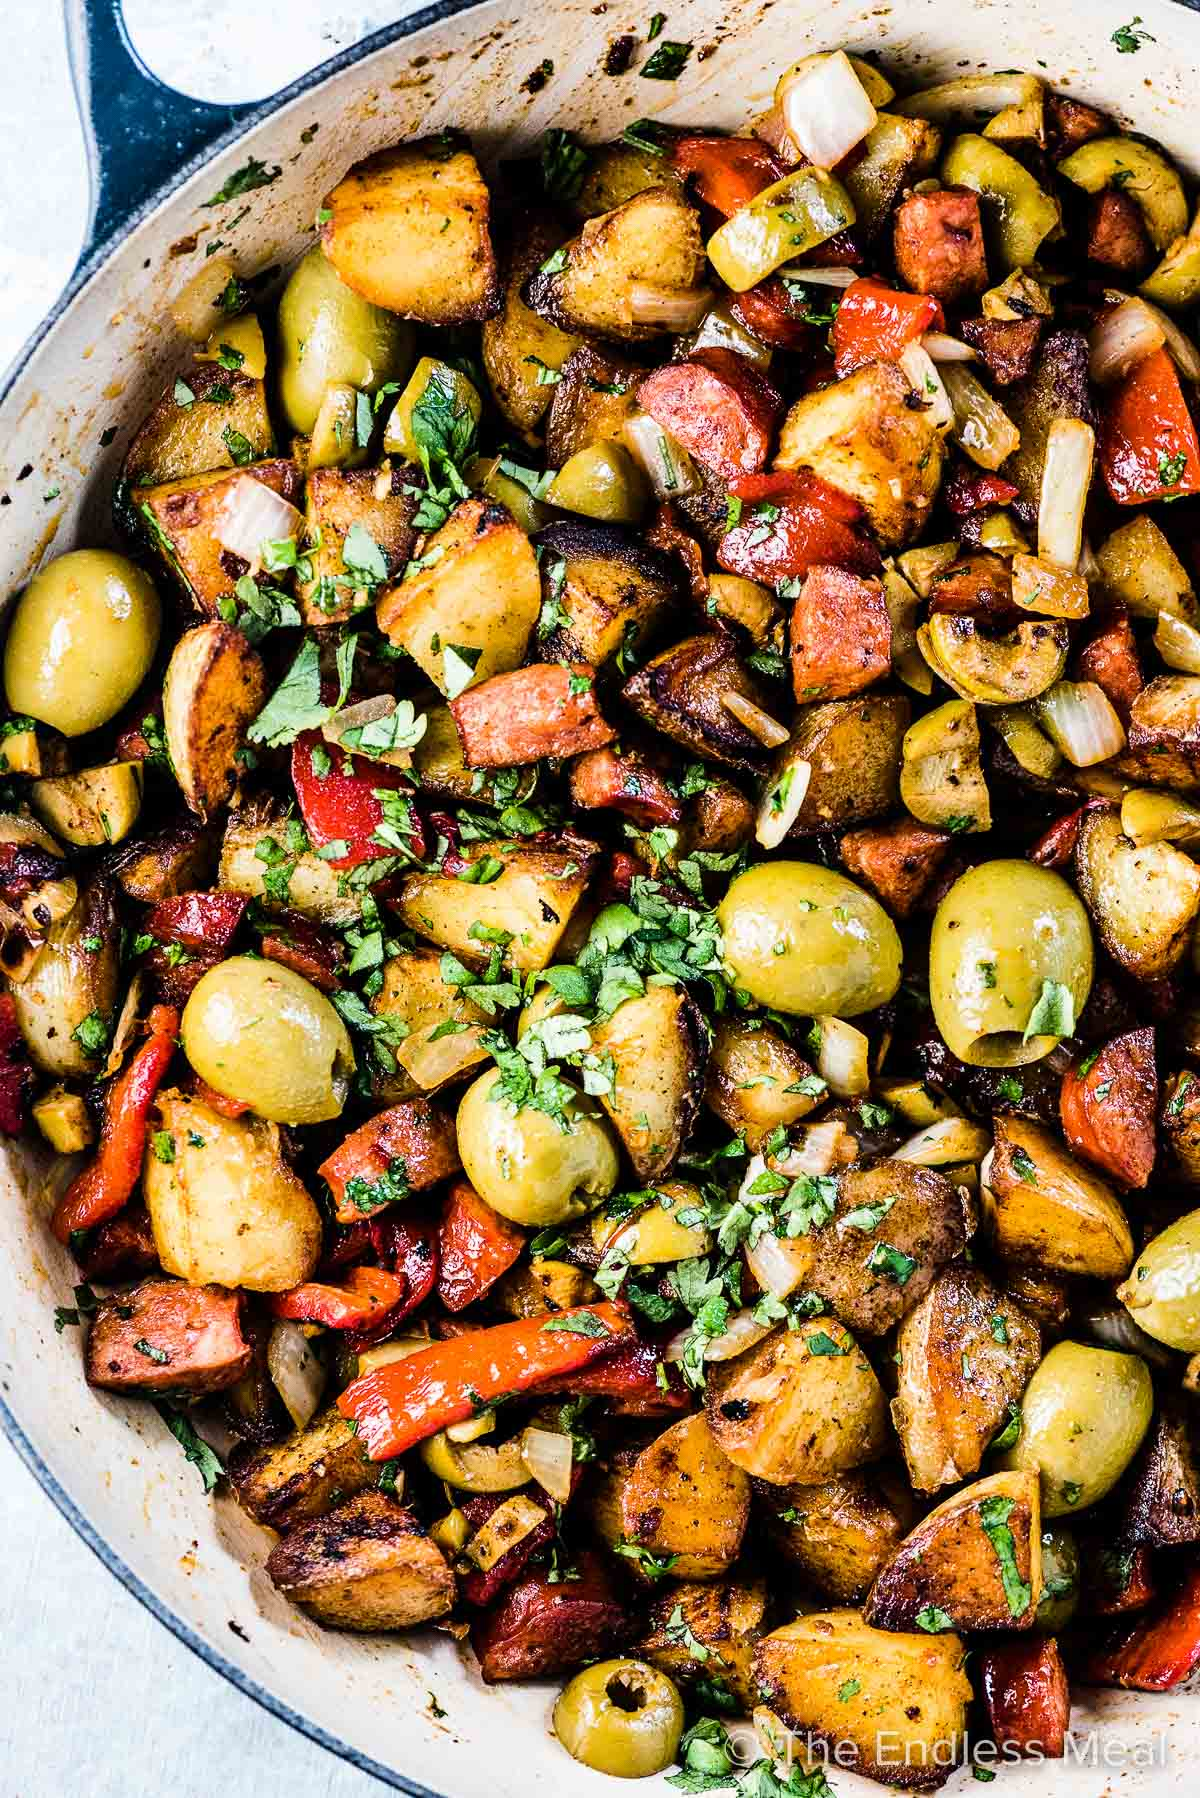 A skillet with pan fried breakfast potatoes with olives, chorizo, and roasted red peppers.